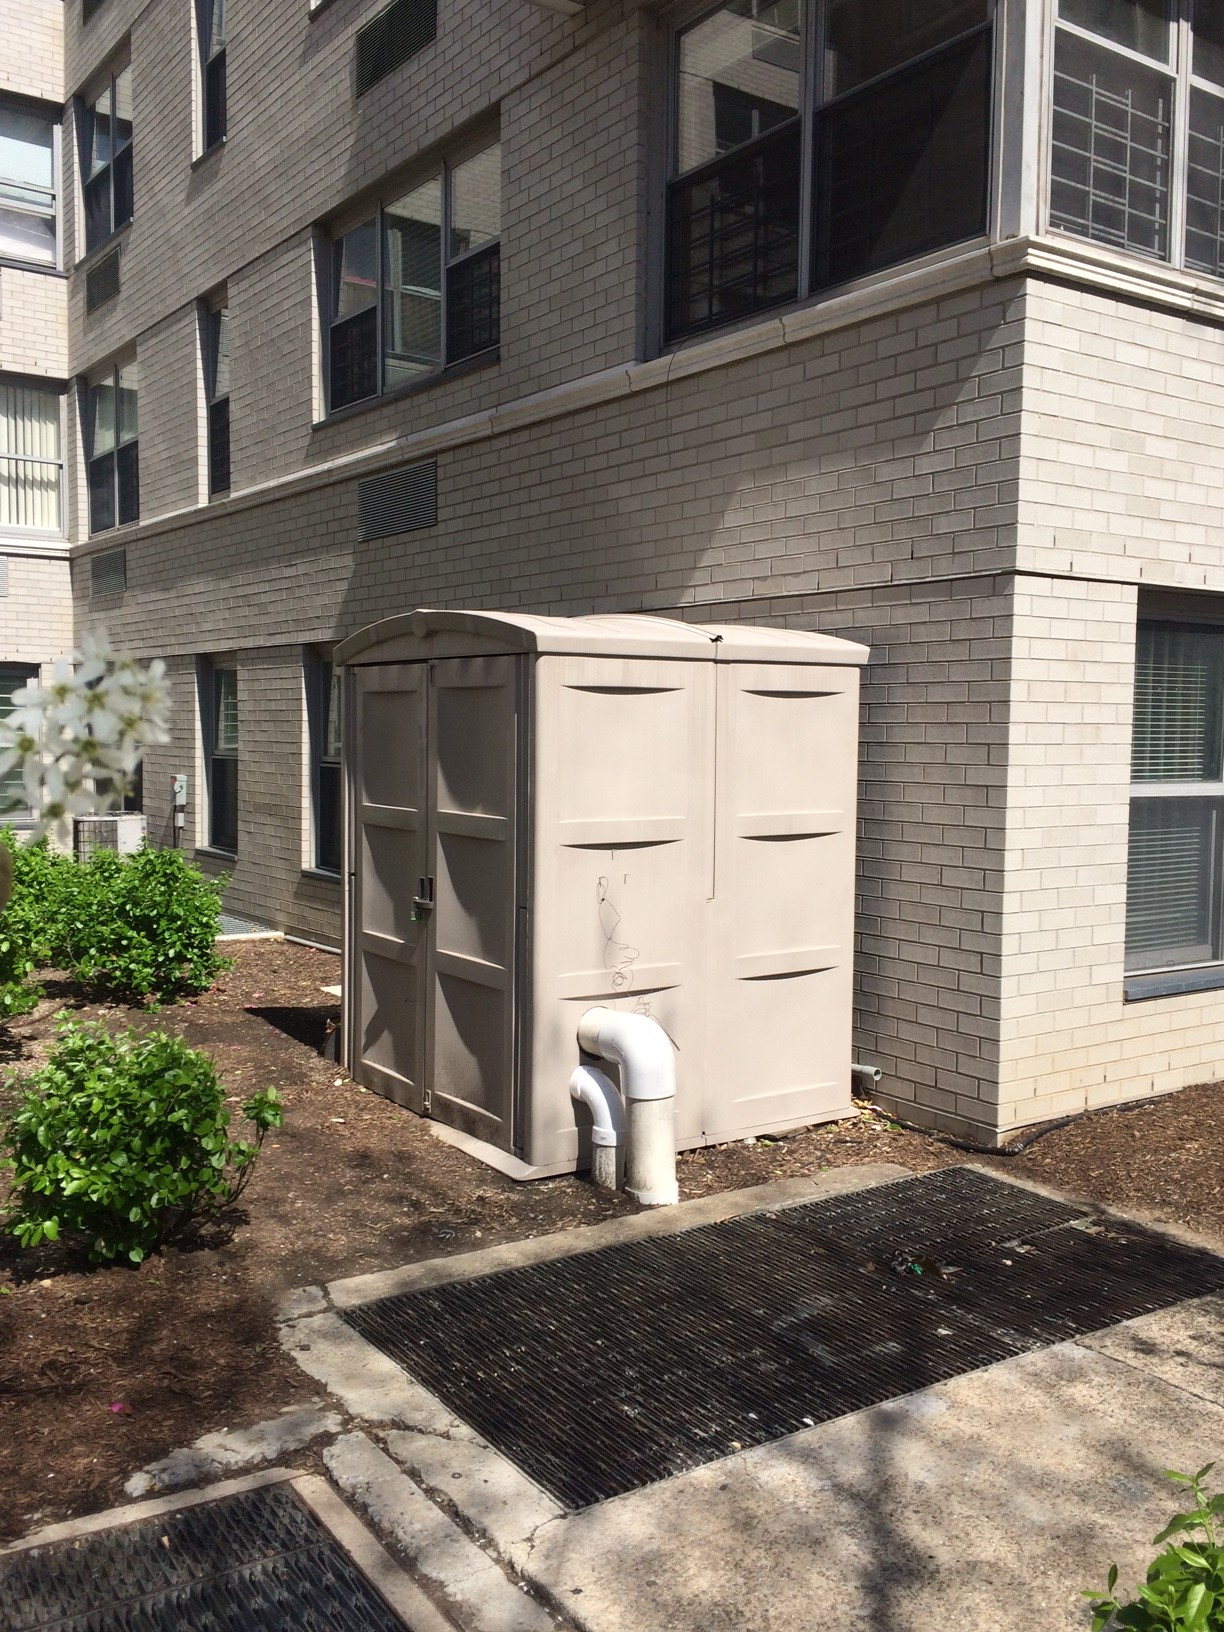 RJS Environmental installing an oil recovery system for an apartment complex